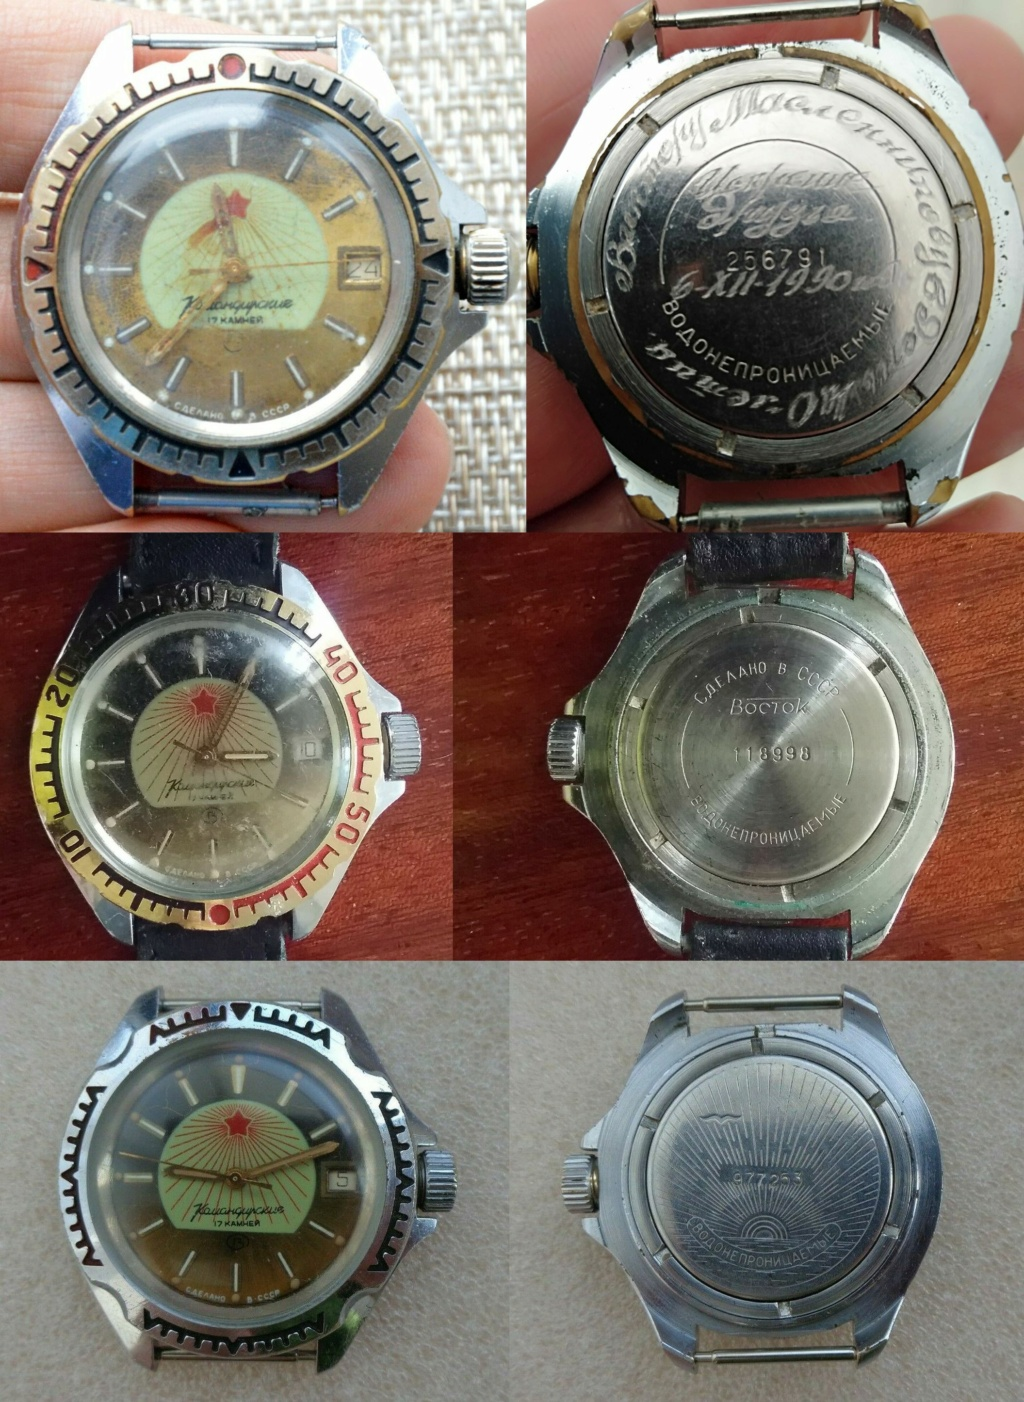 vostok rising sun red star CHIR - Page 12 123a10